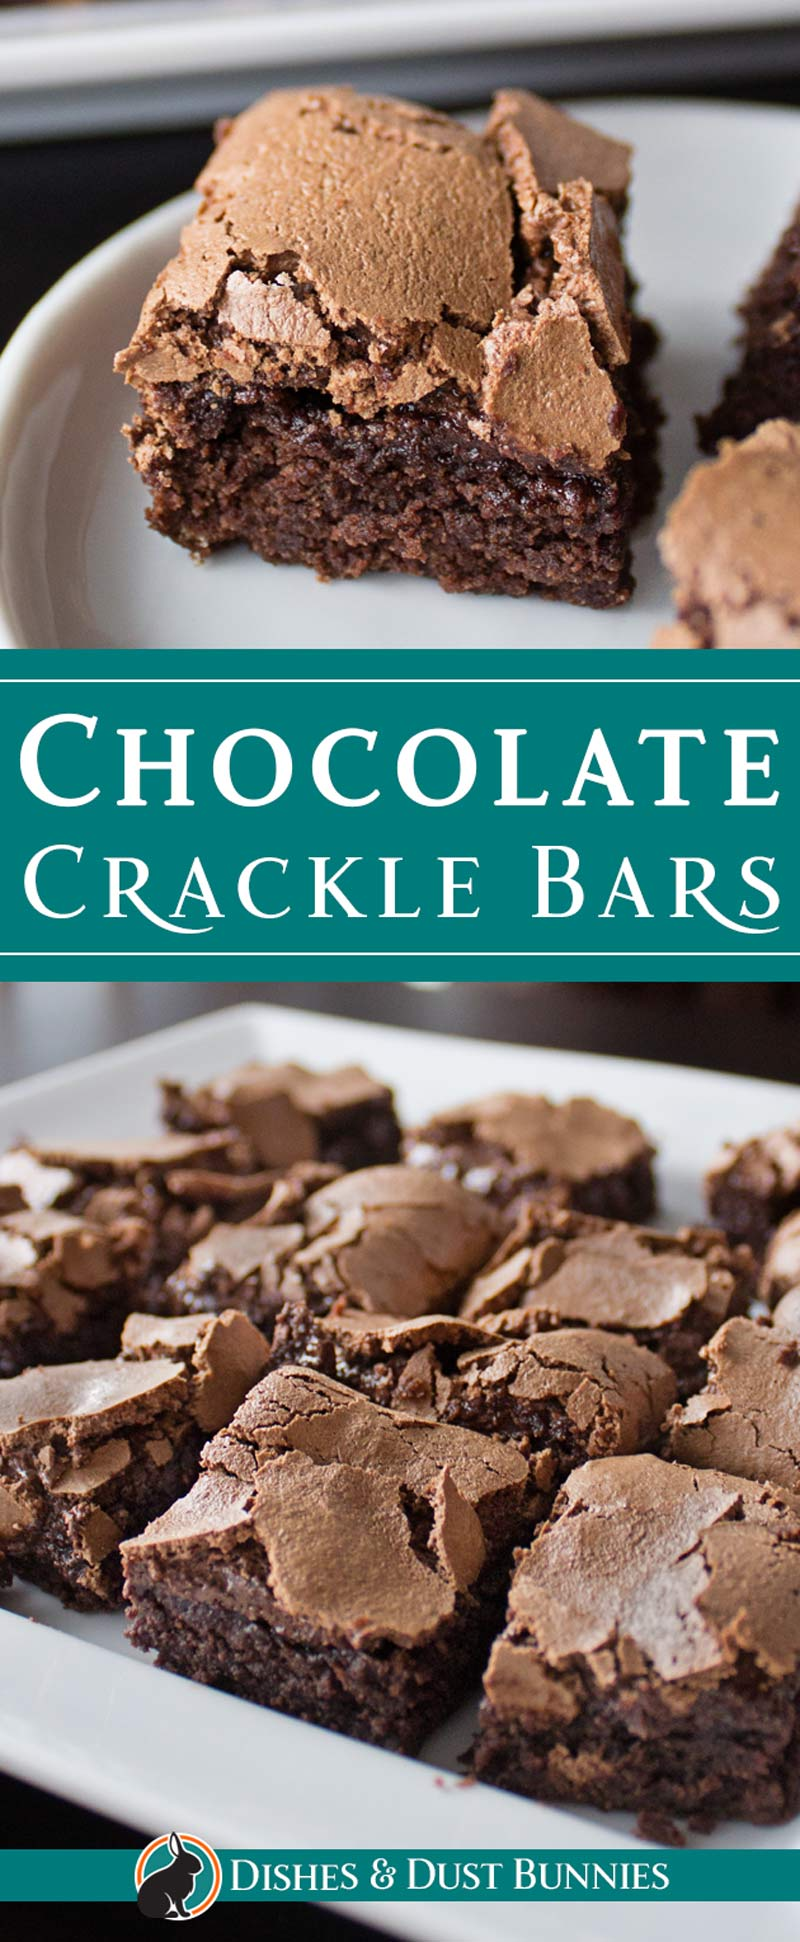 Chocolate Crackle Bars from dishesanddustbunnies.com